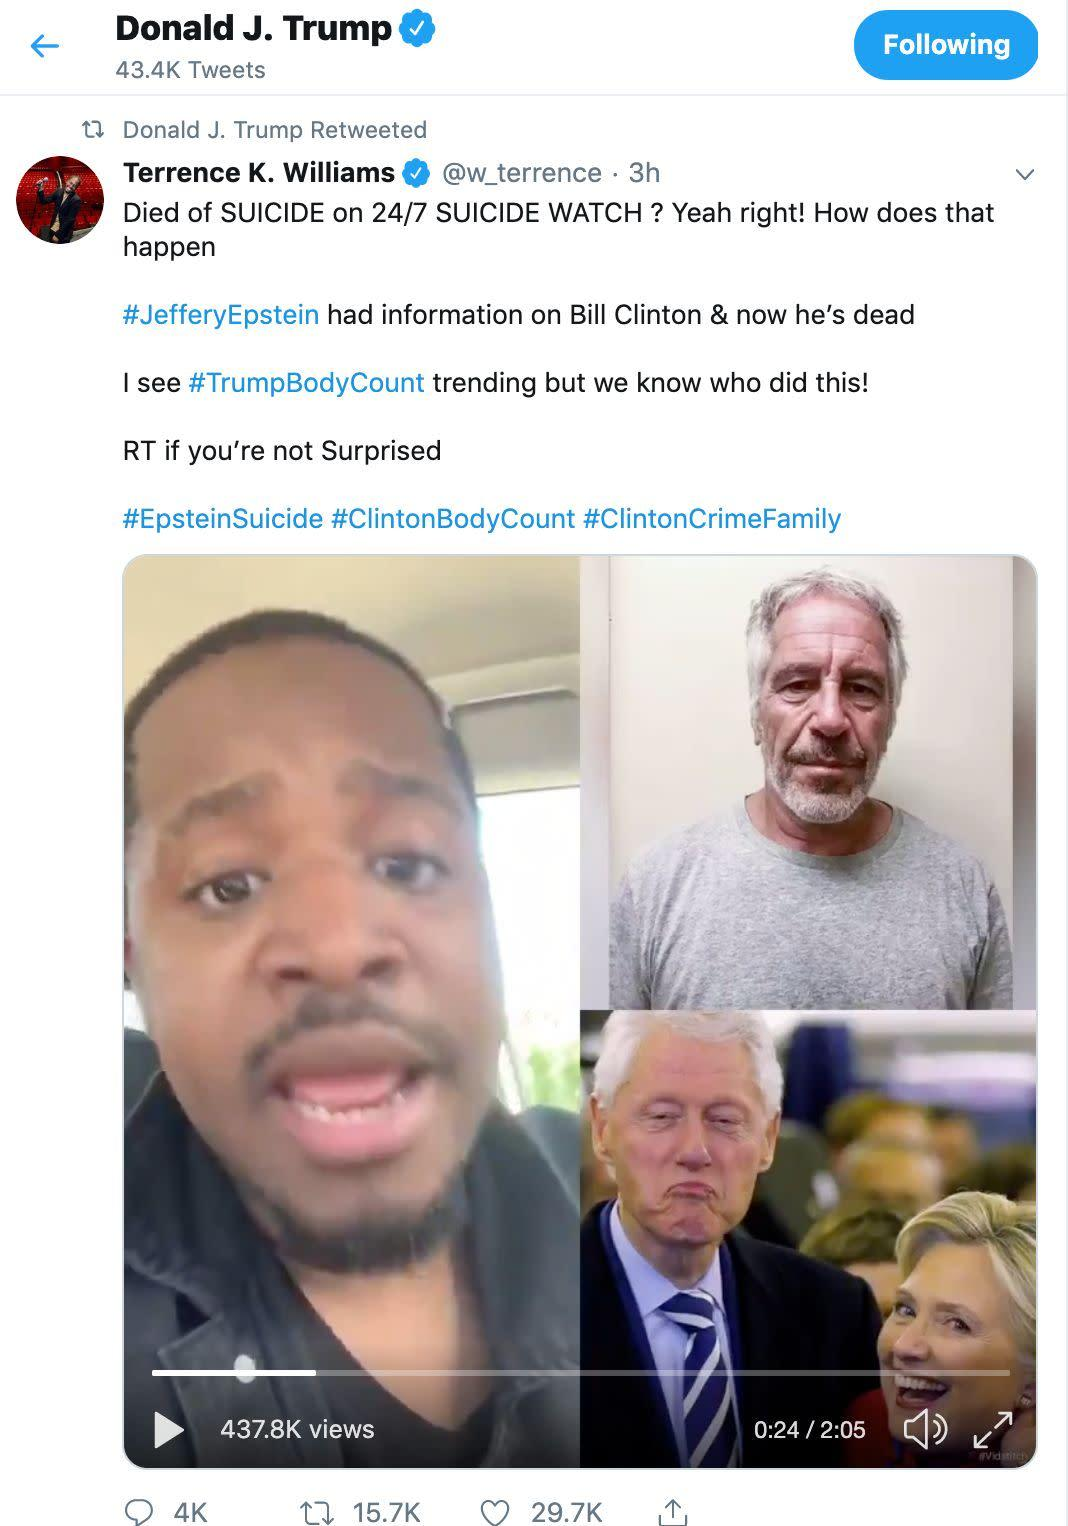 """President Donald Trump retweeted this conspiracy theory linking the Clintons to Jeffrey Epstein's death. (Photo: <a href=""""https://twitter.com/w_terrence/status/1160256105399967744"""" rel=""""nofollow noopener"""" target=""""_blank"""" data-ylk=""""slk:Twitter"""" class=""""link rapid-noclick-resp"""">Twitter</a>)"""